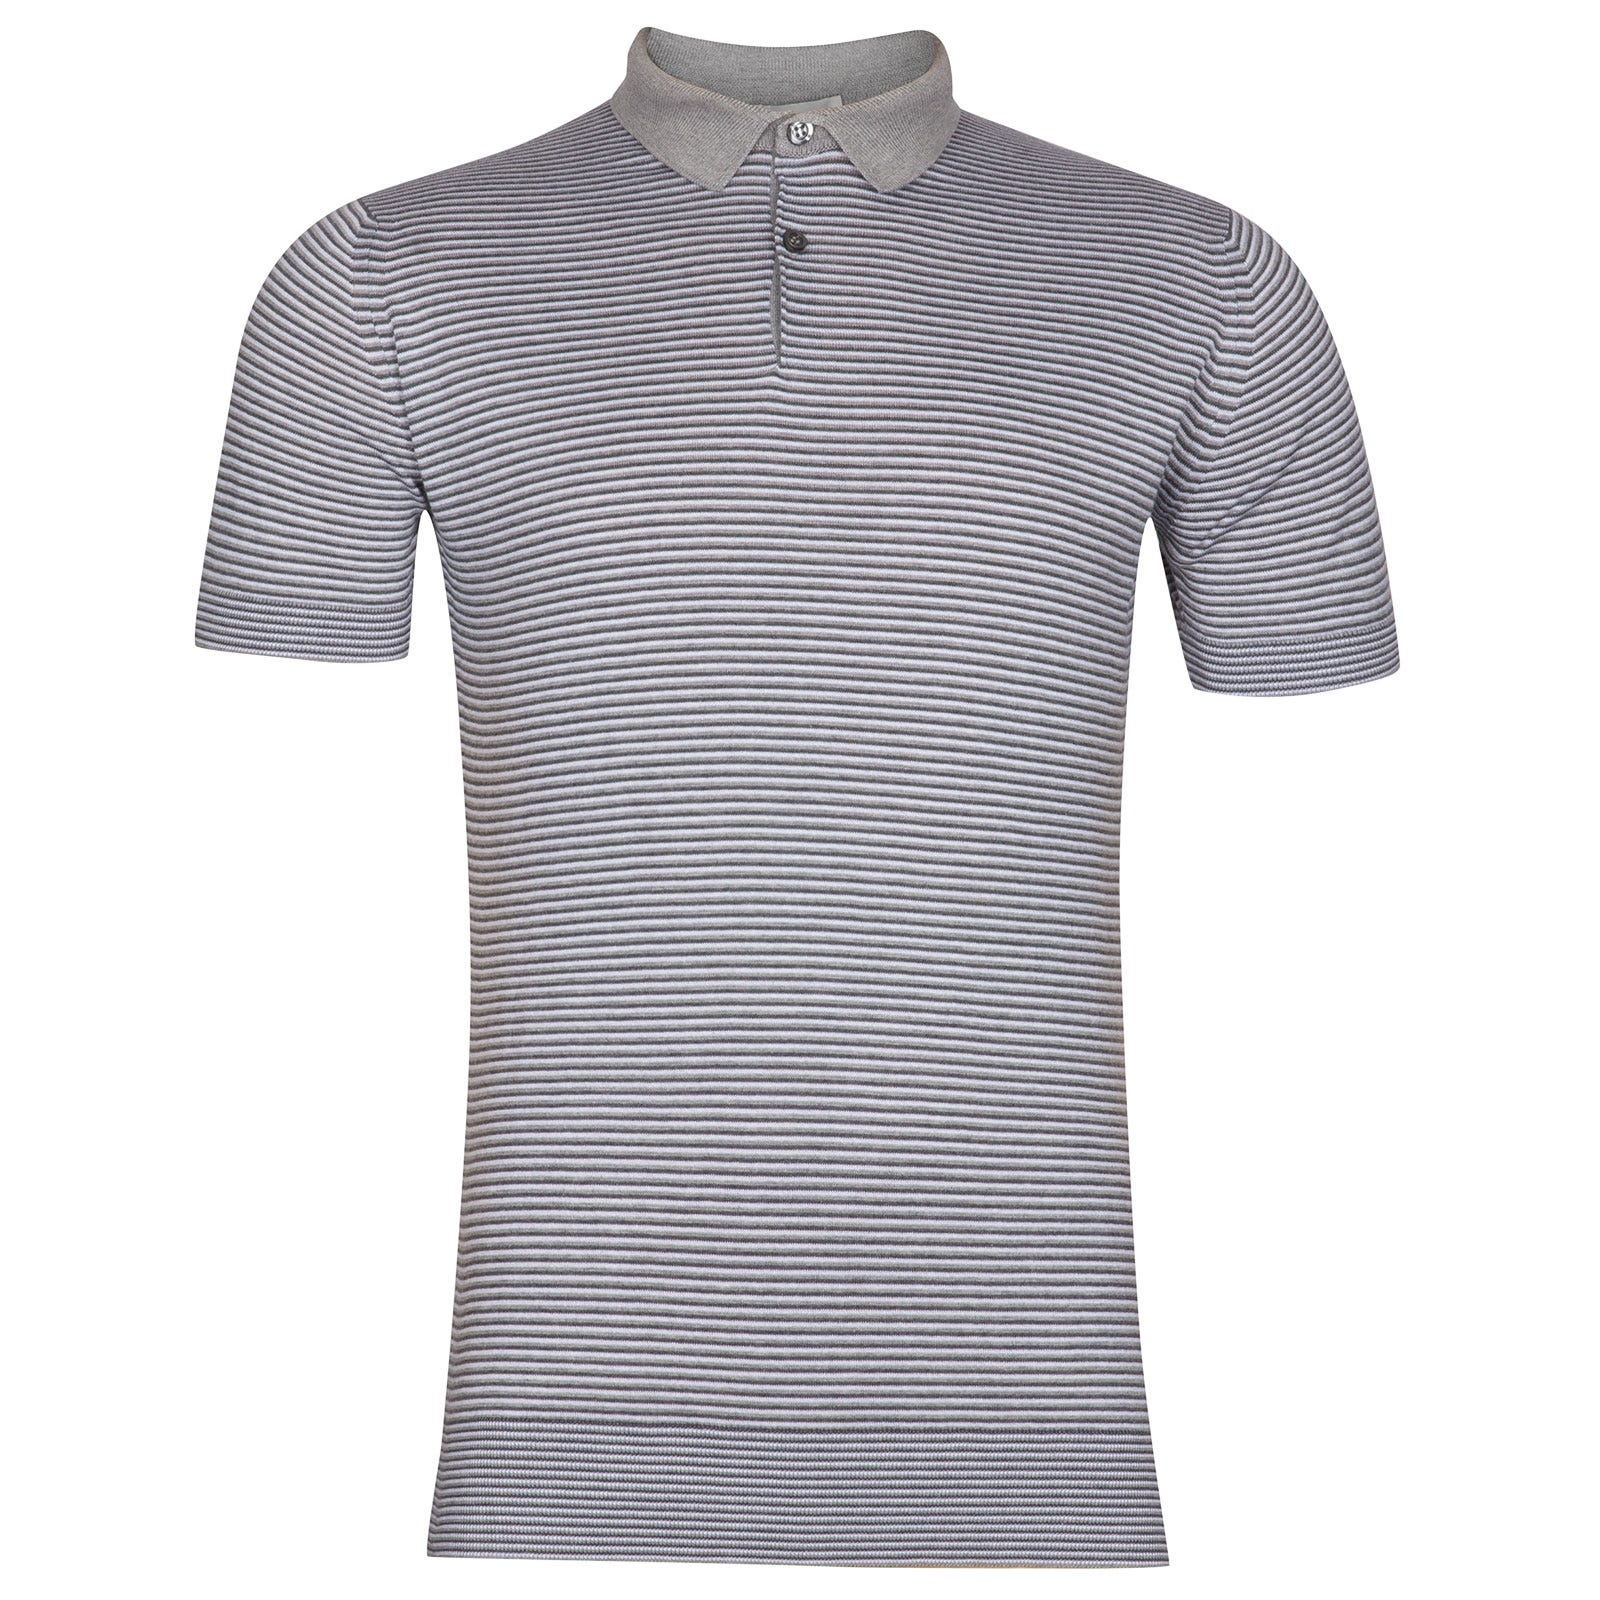 John Smedley Etton Sea Island Cotton Shirt in Silver-M